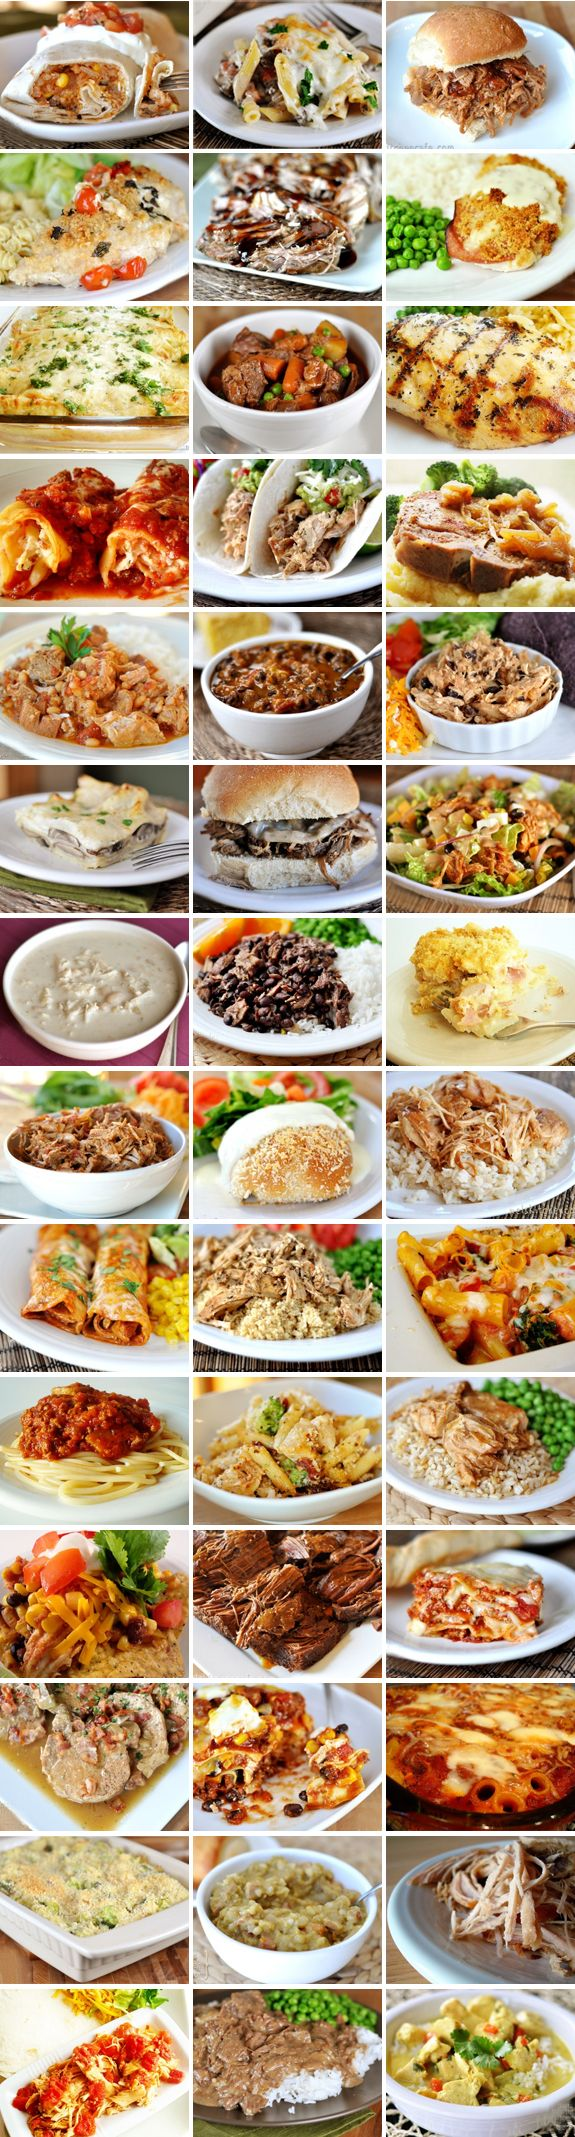 40+ Make Ahead Meals! Great idea if having a baby or surgery!